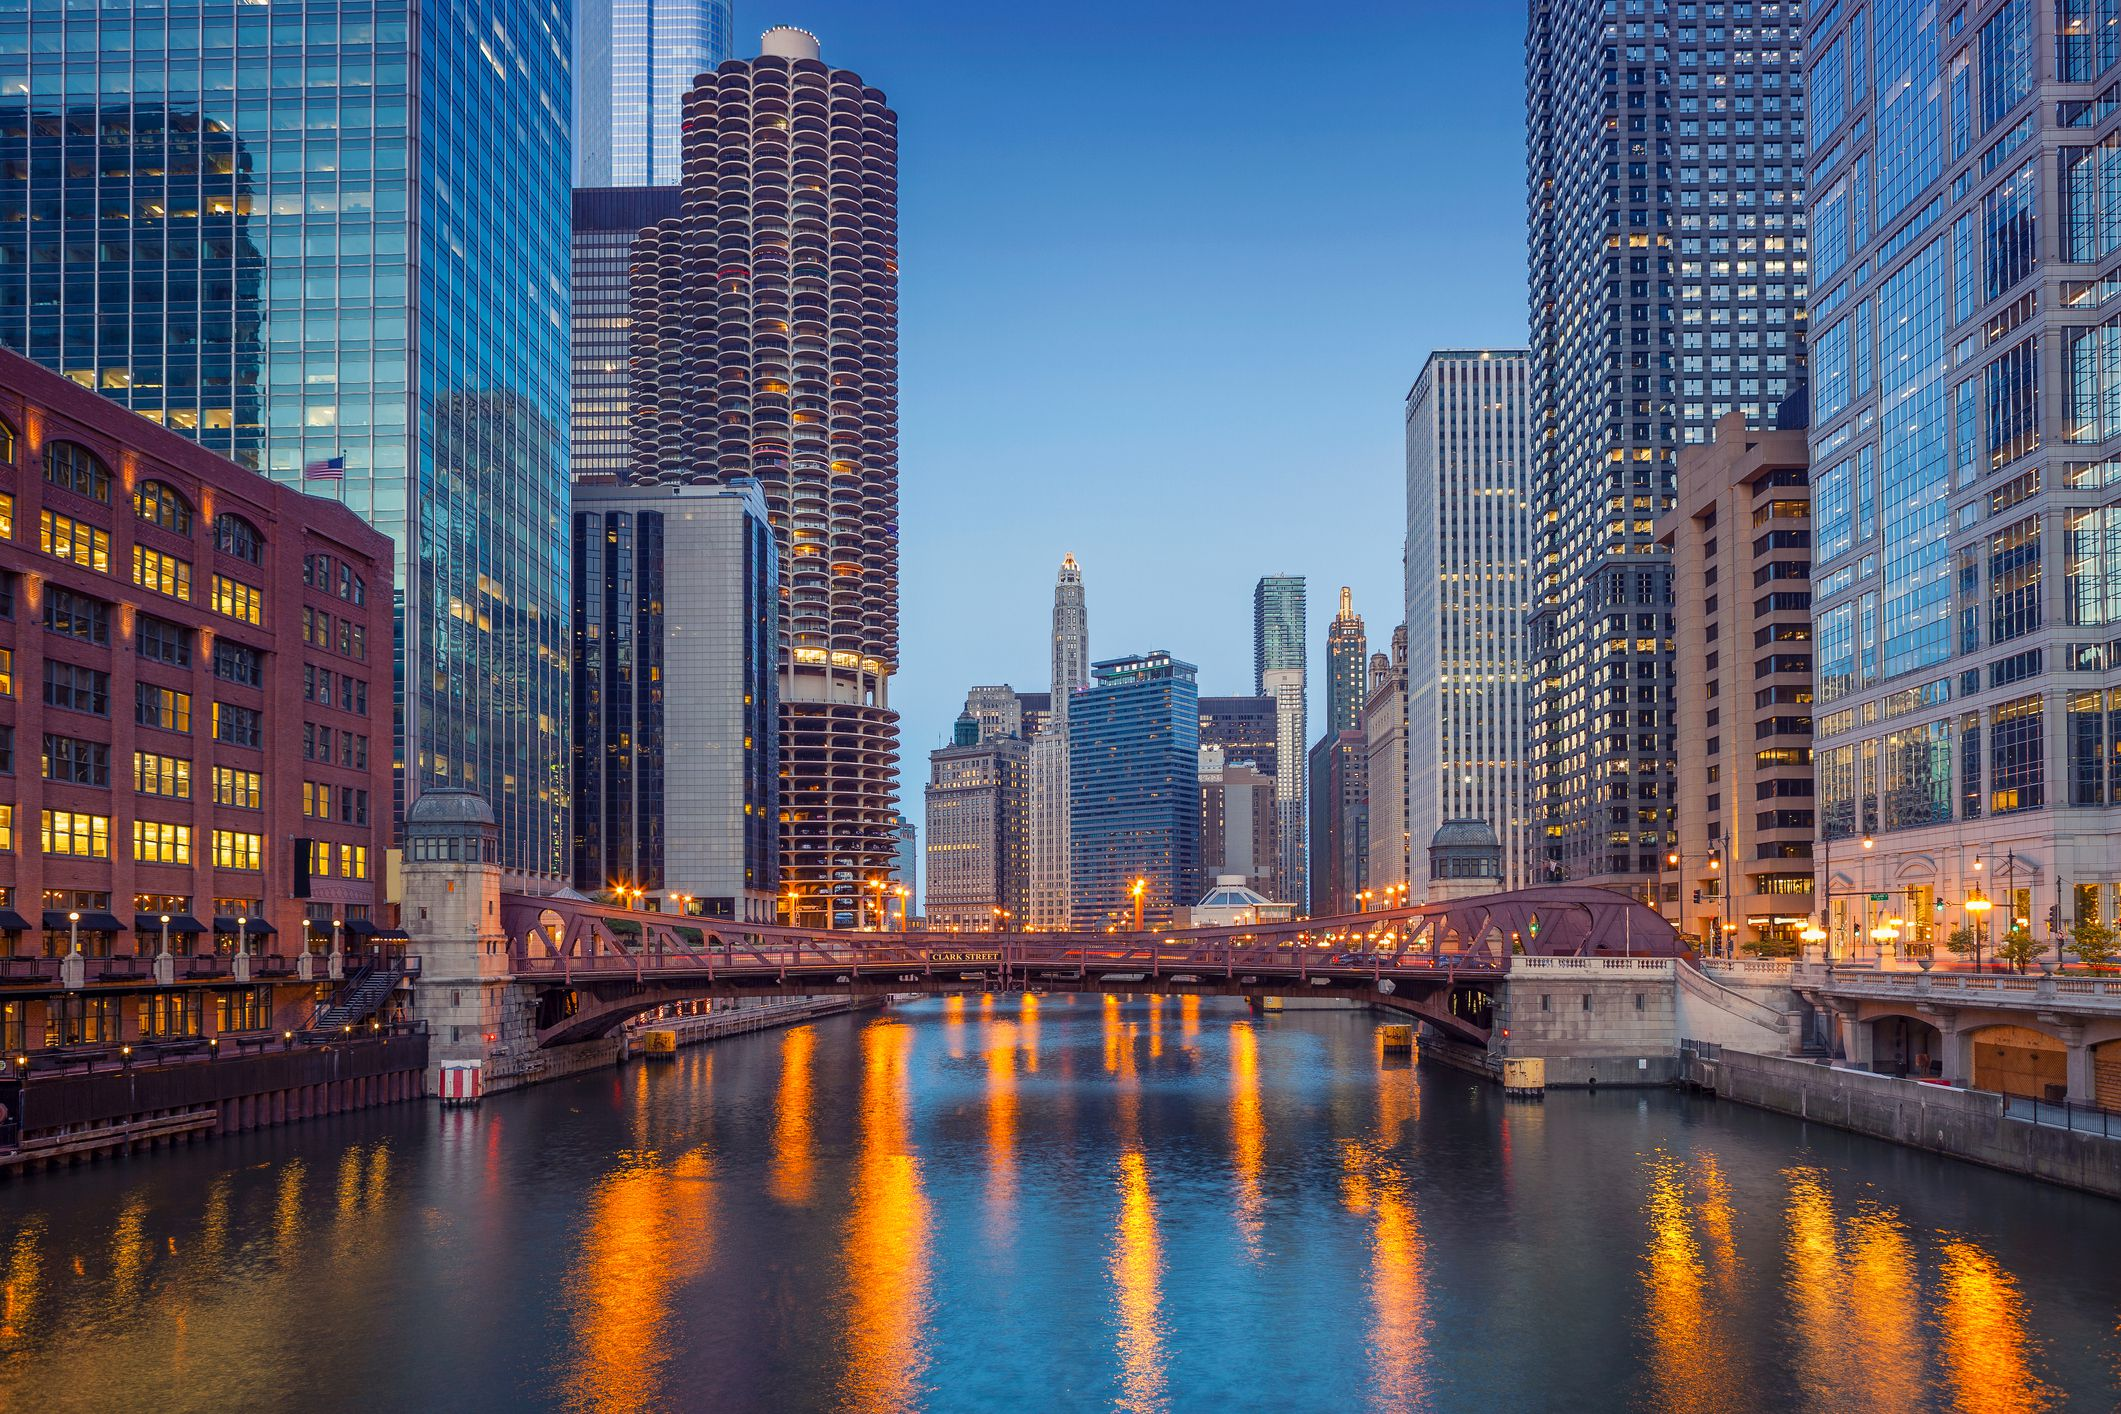 Chicago Hotel Packages Add Spice to the Weekend